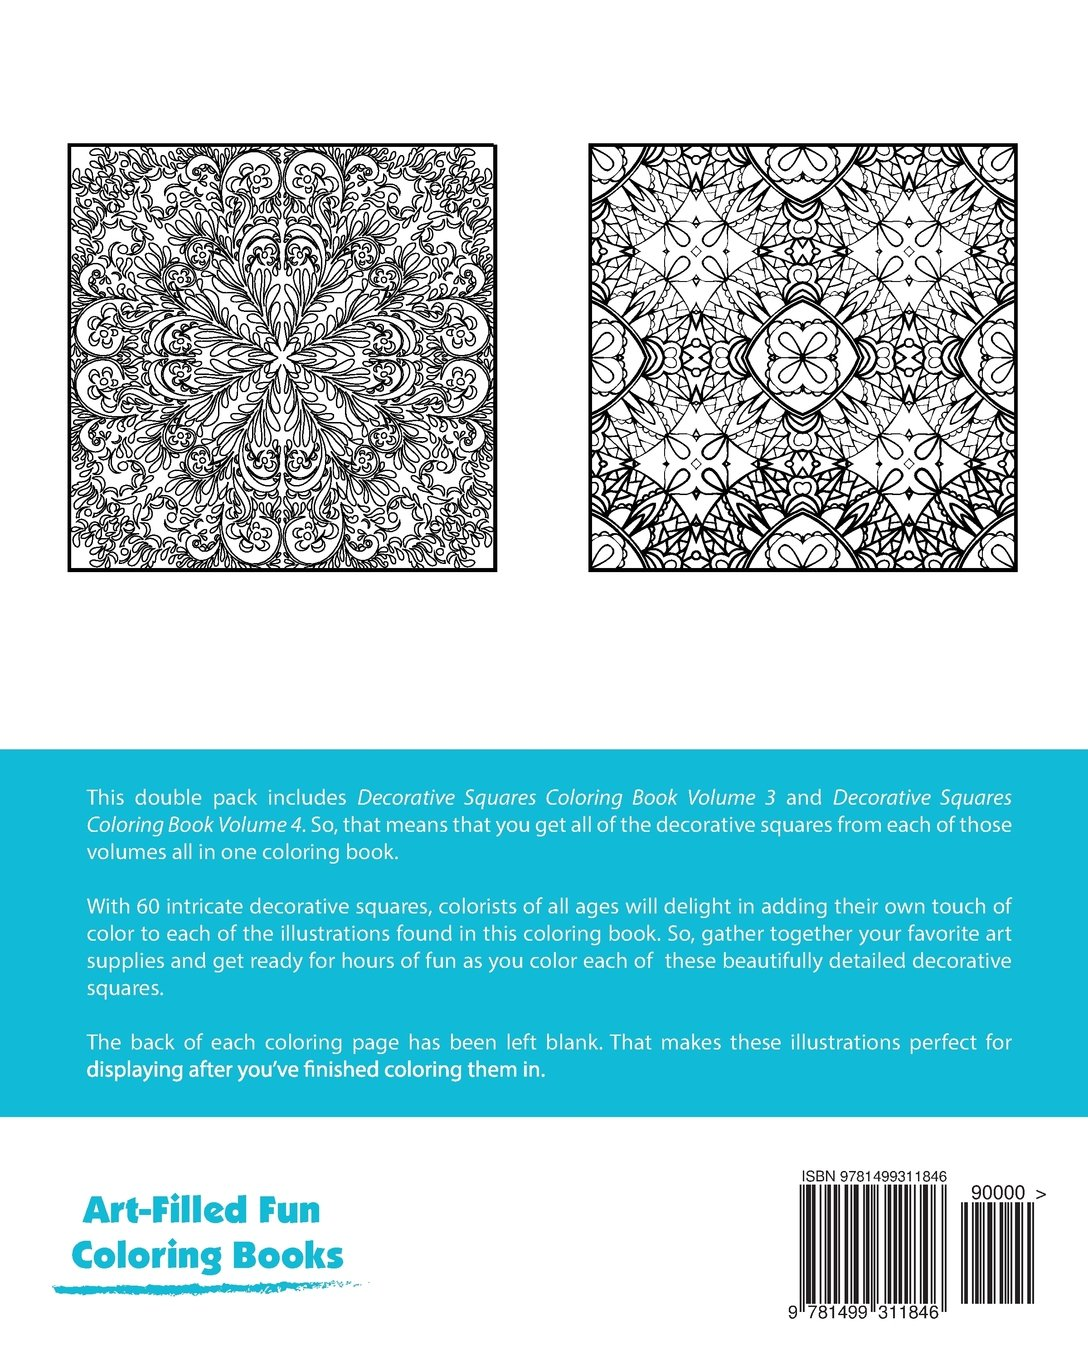 Decorative Squares Coloring Book Double Pack (Volumes 3 & 4) (Art ...